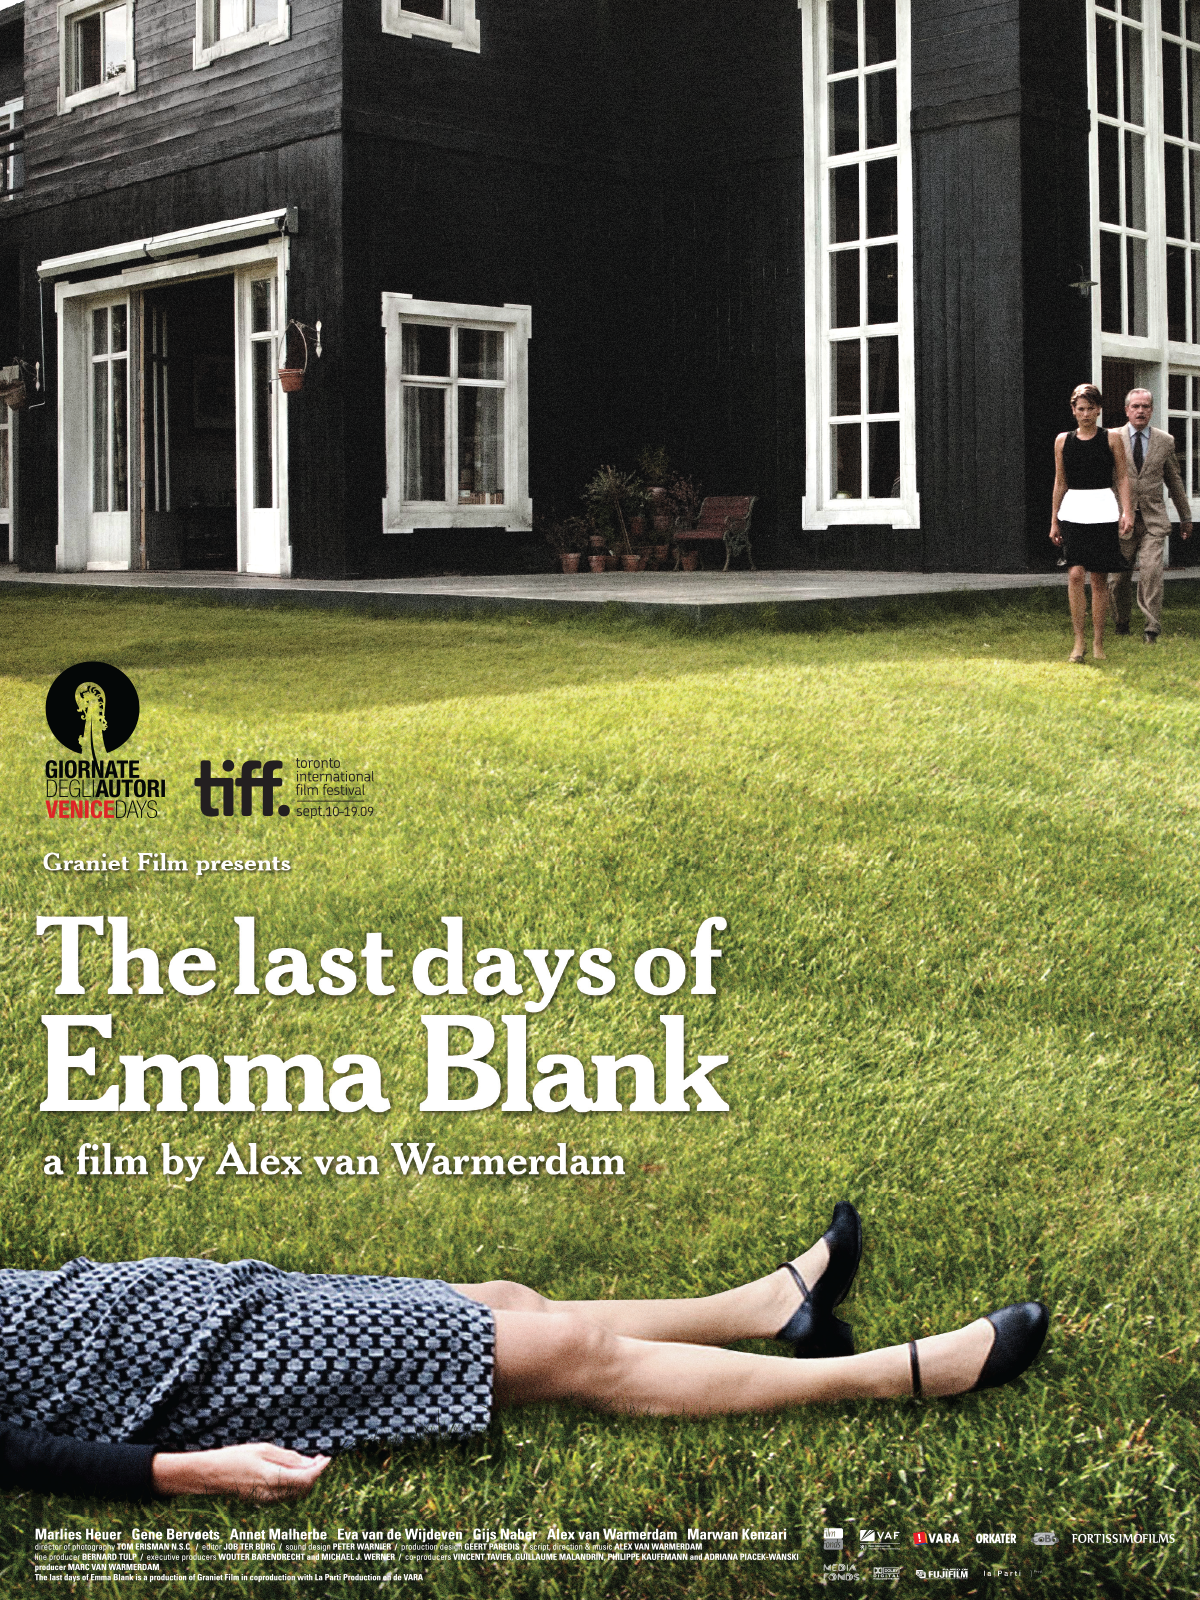 THE LAST DAYS OF EMMA BLANK 1200X1600 ARTWORK AMAZON